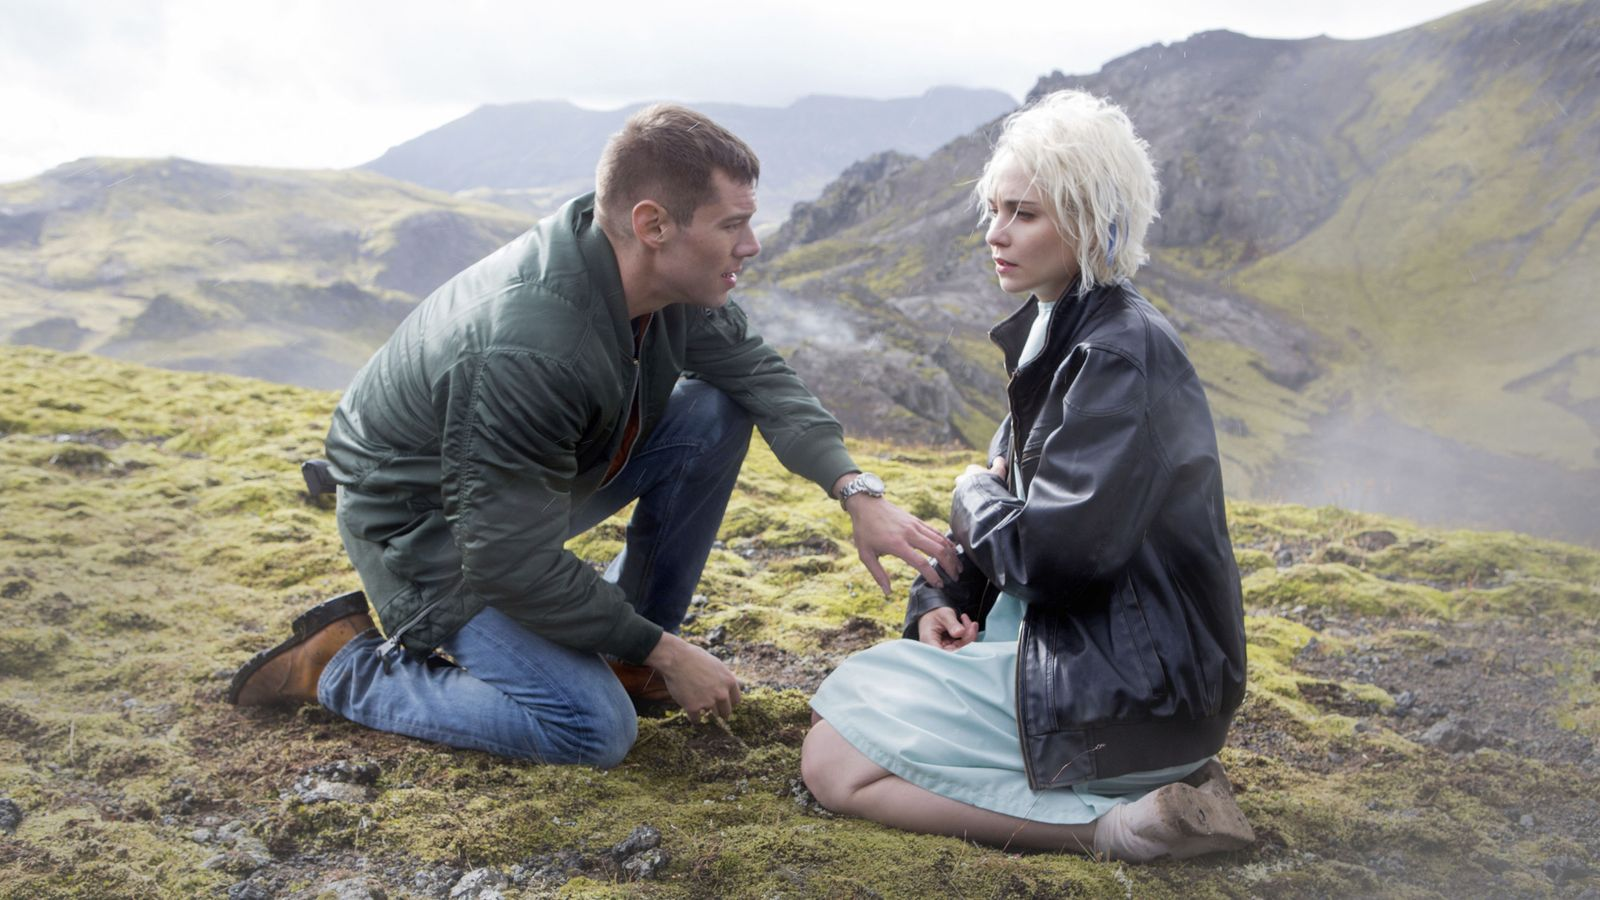 Sense8 Porn Site Offers To Pick Up Netflixs Cancelled Lgbtq Show  Ents  Arts News -2859